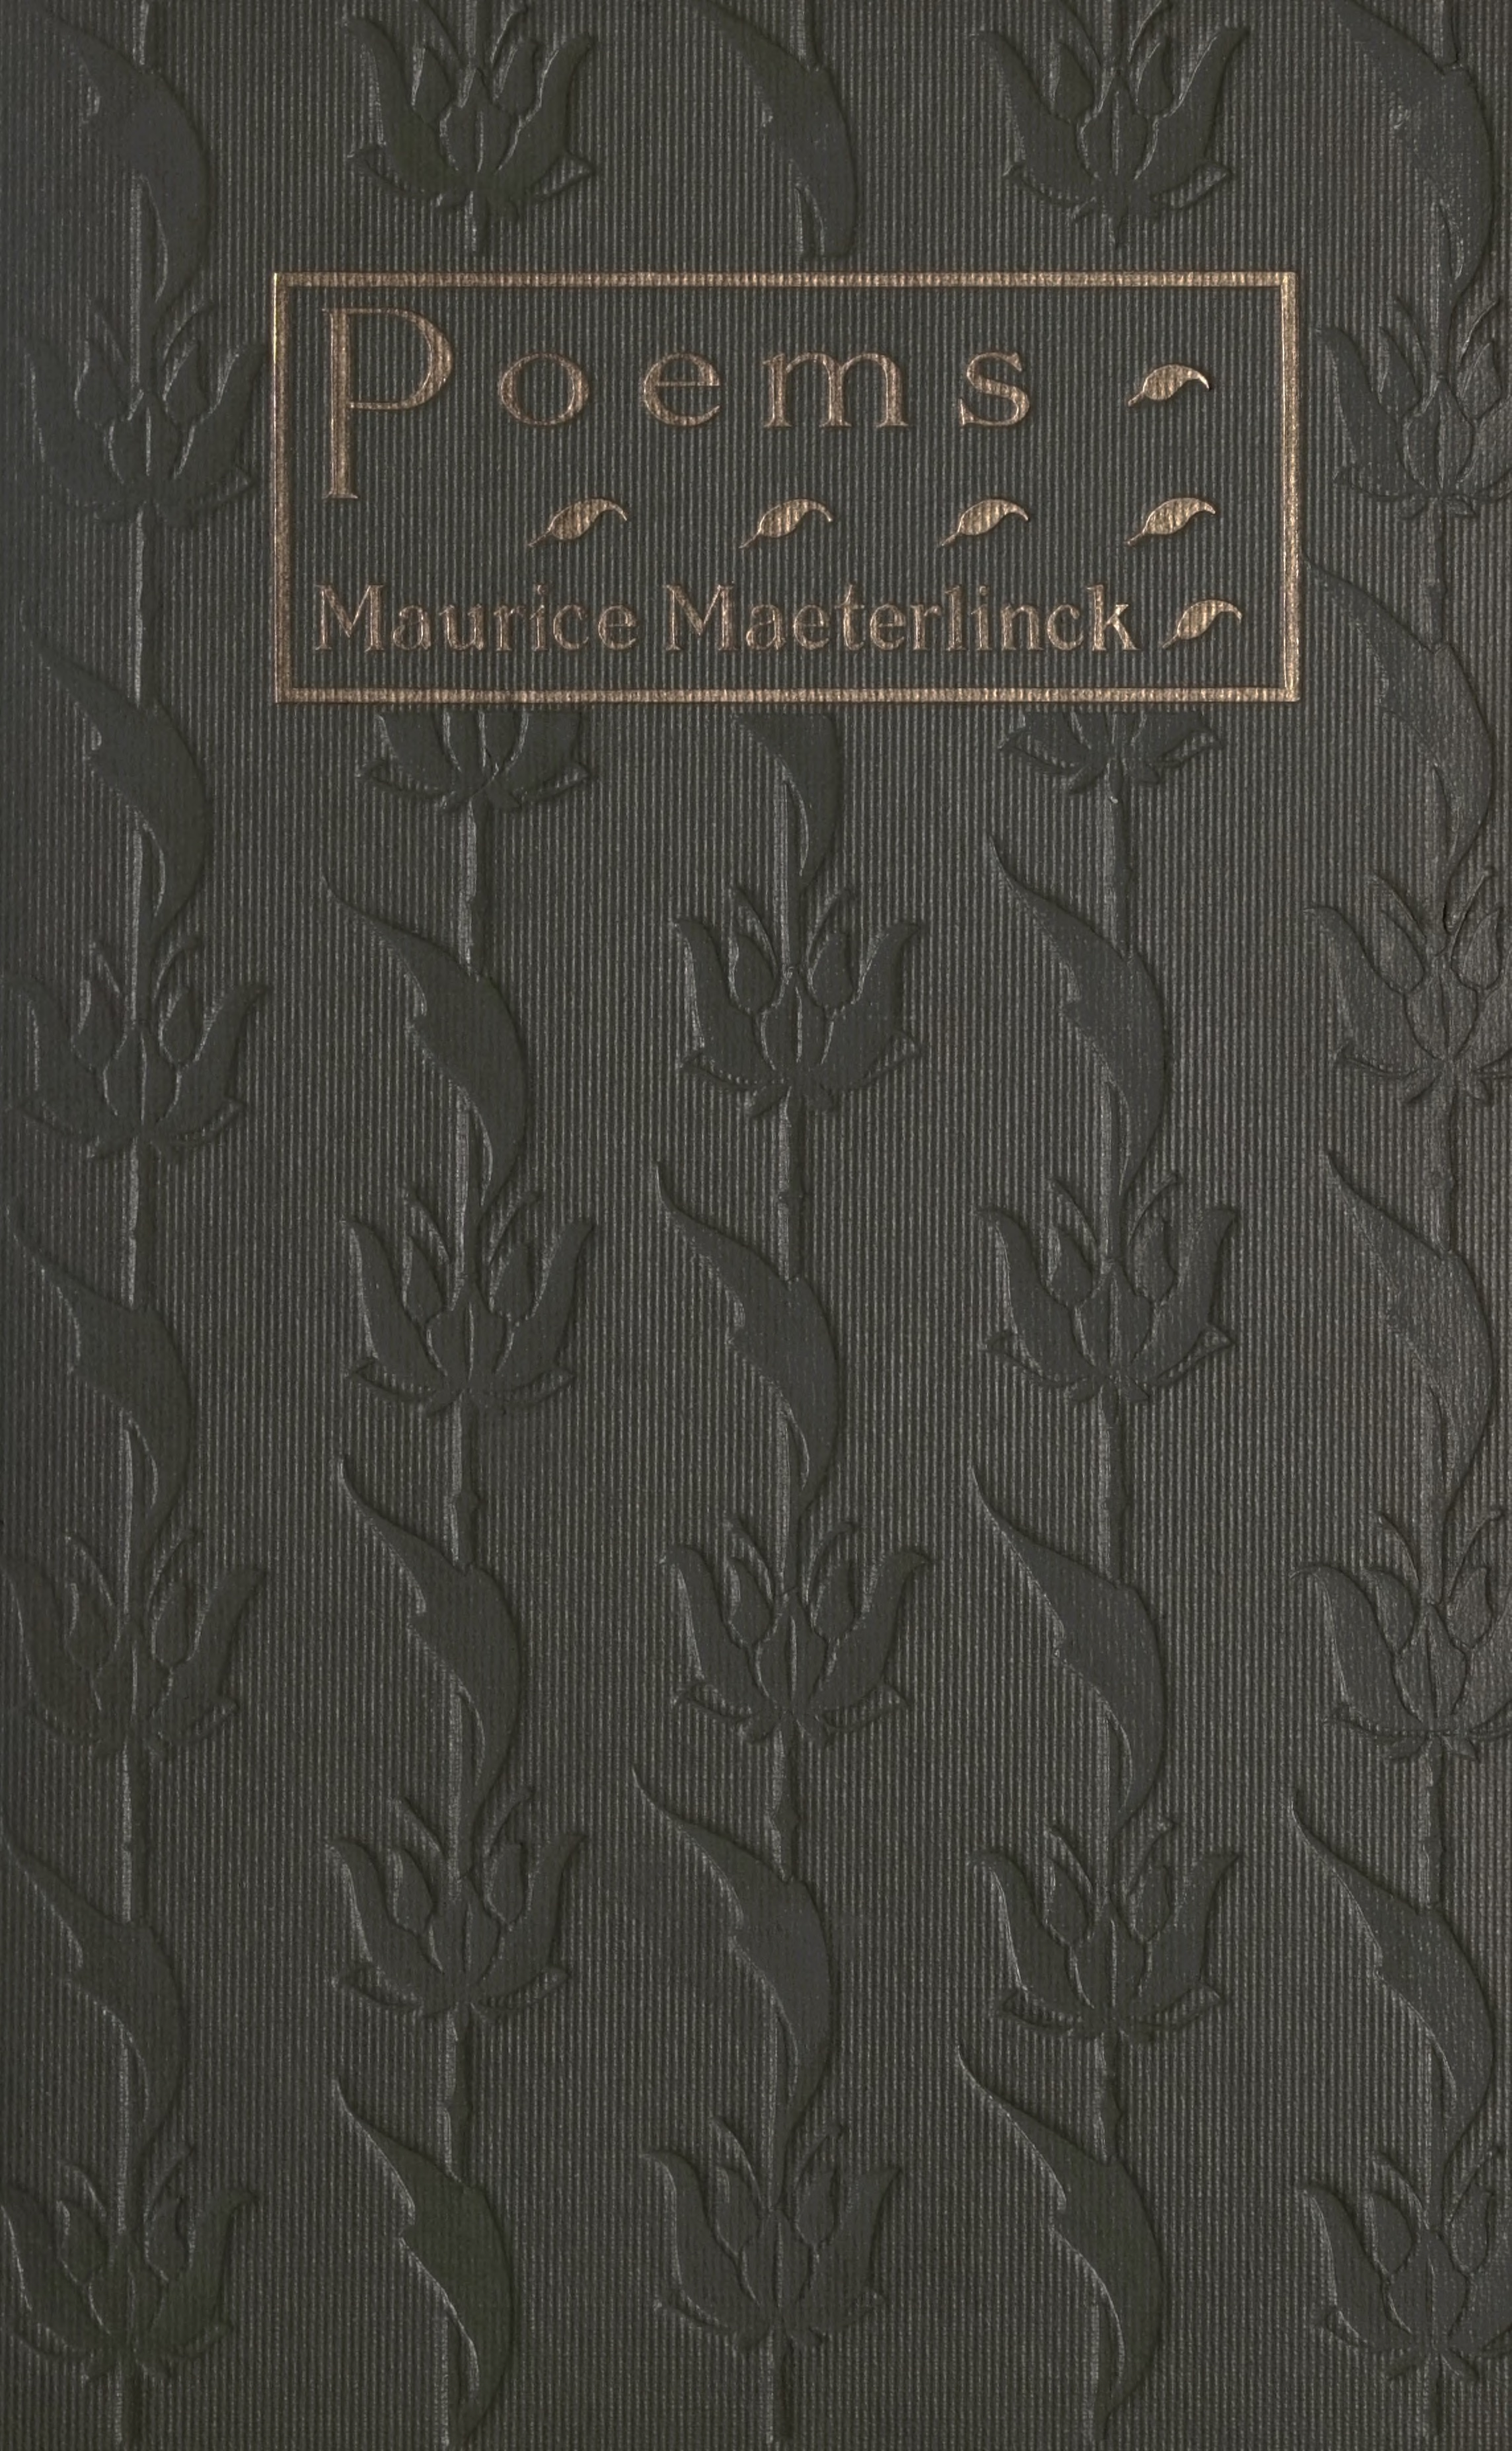 Maurice Maeterlinck, Poems, cover design by Kahlil Gibran, New York: Dodd, Mead and Co., 1915.